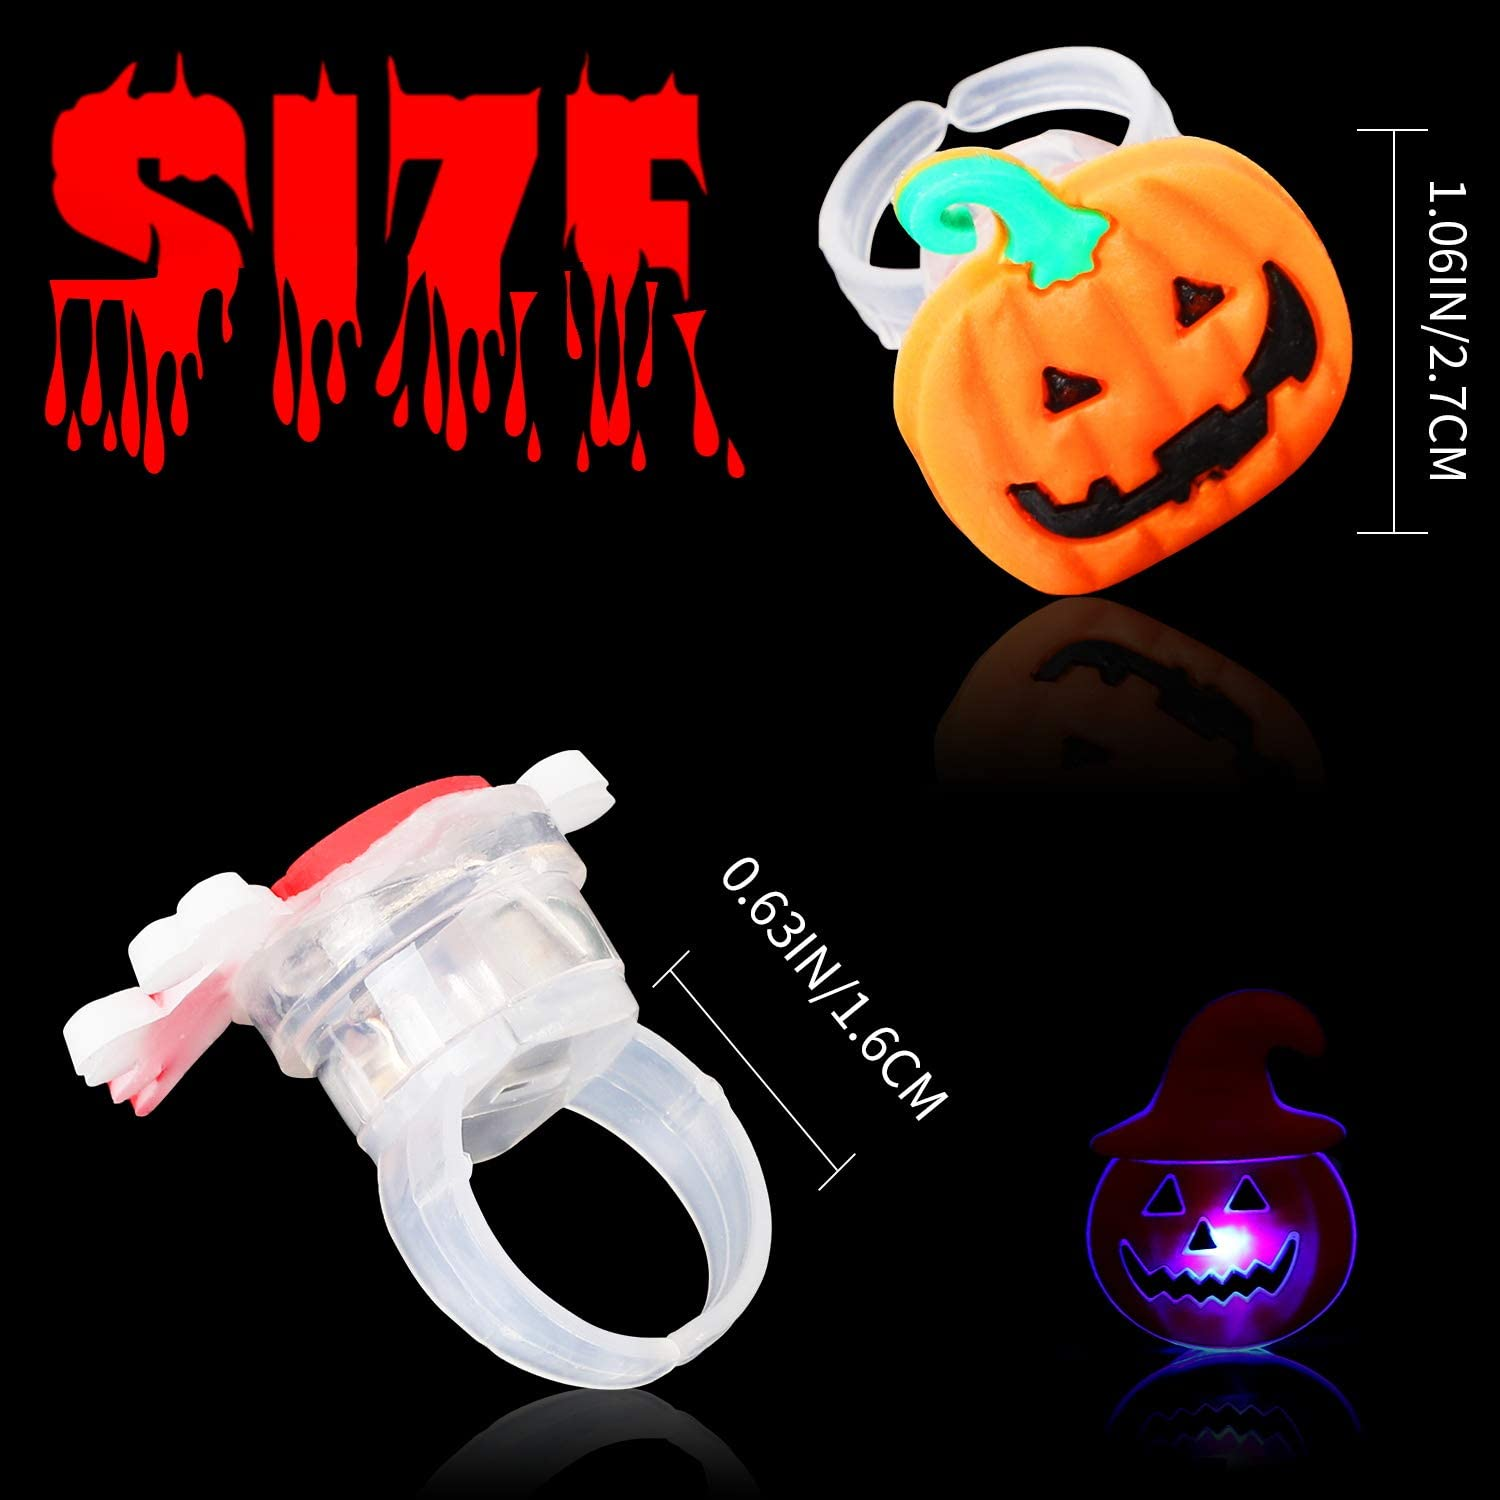 Biulotter 50 Packs Halloween LED Light Up Rings Halloween Glow in The Dark Party Supplies Halloween Decoration Soft Toy Rubber Treat Bag Fillers for Kids and Adults Gifts